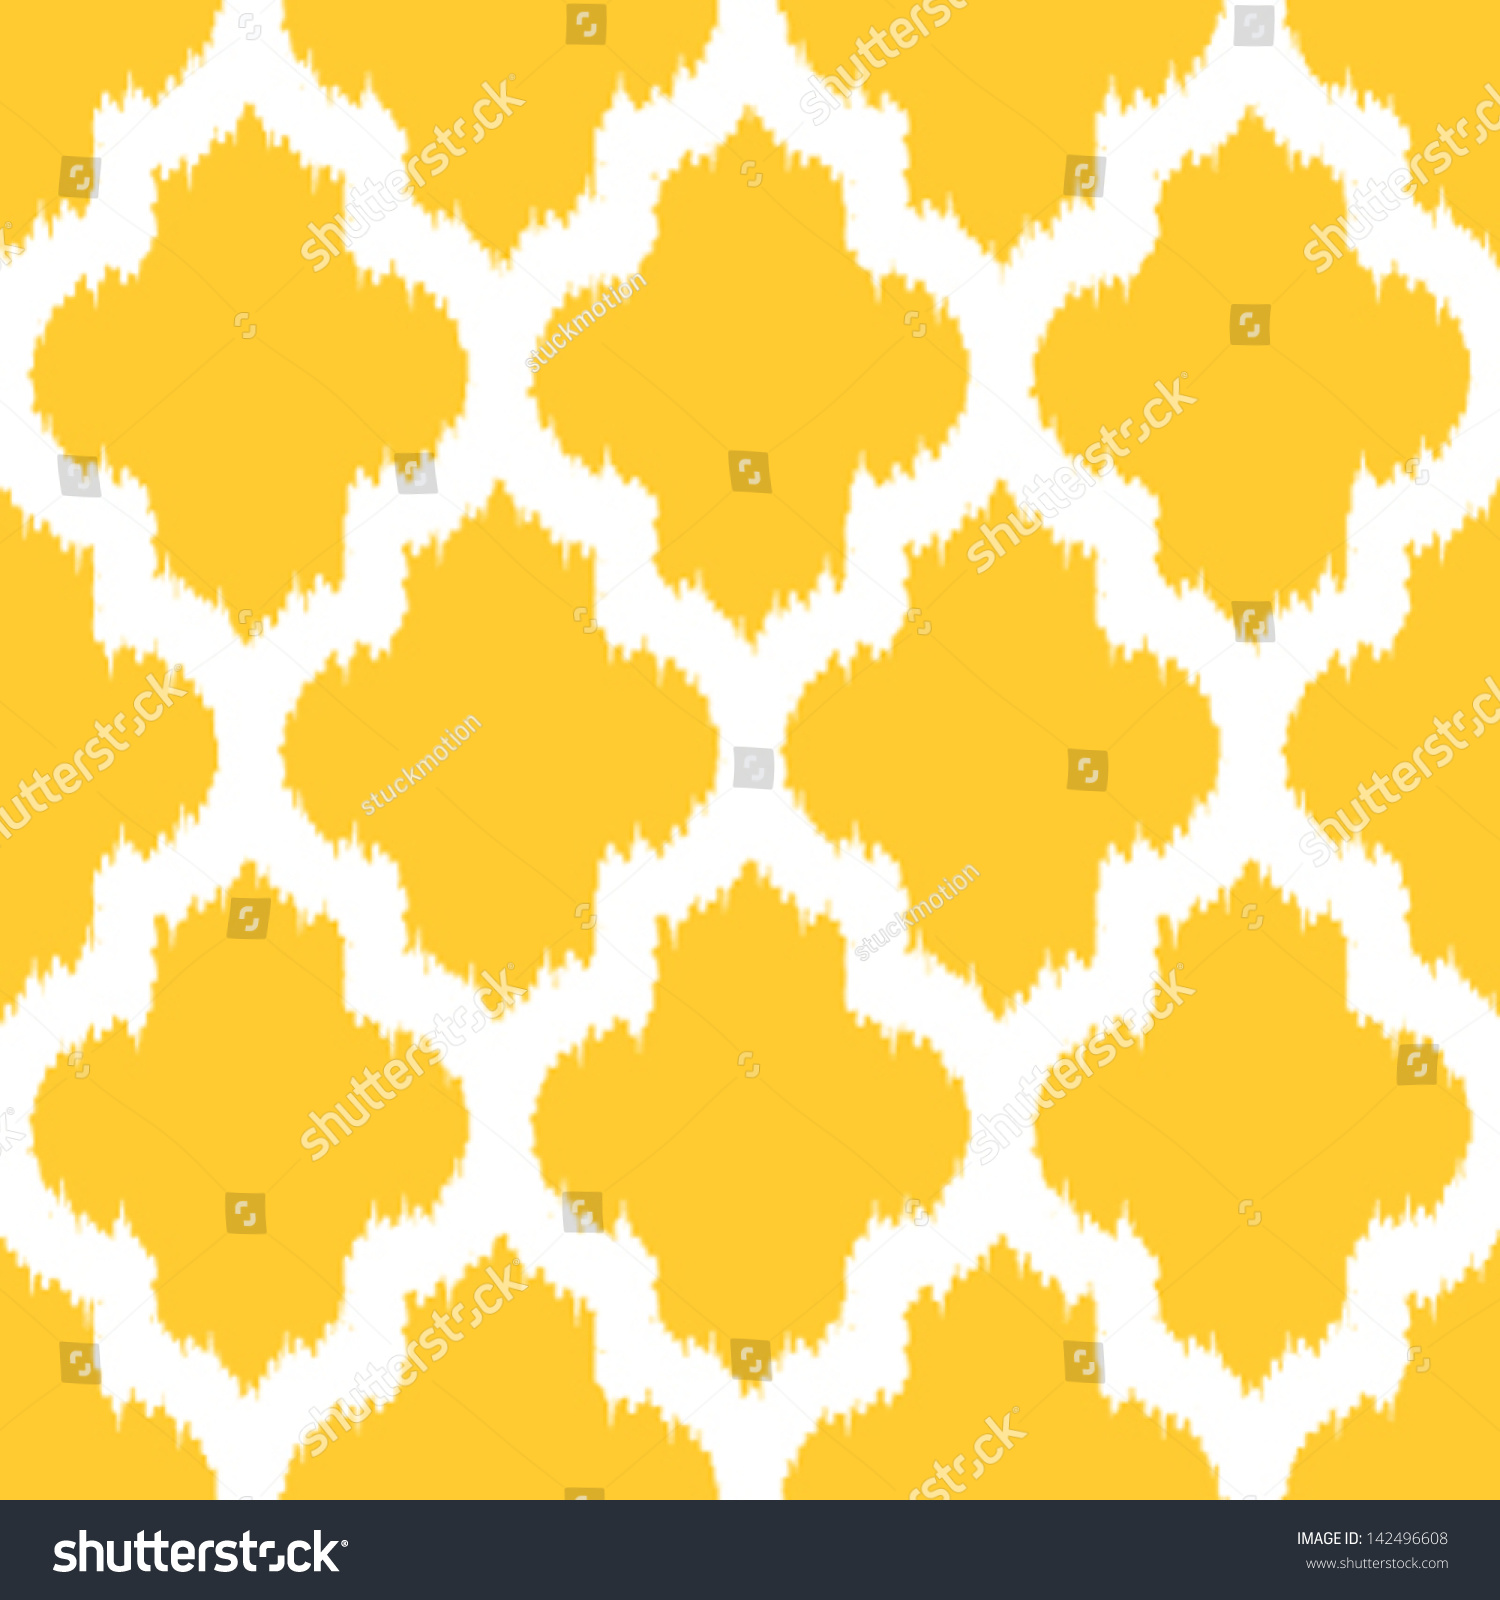 stock vector geometric background - photo #39